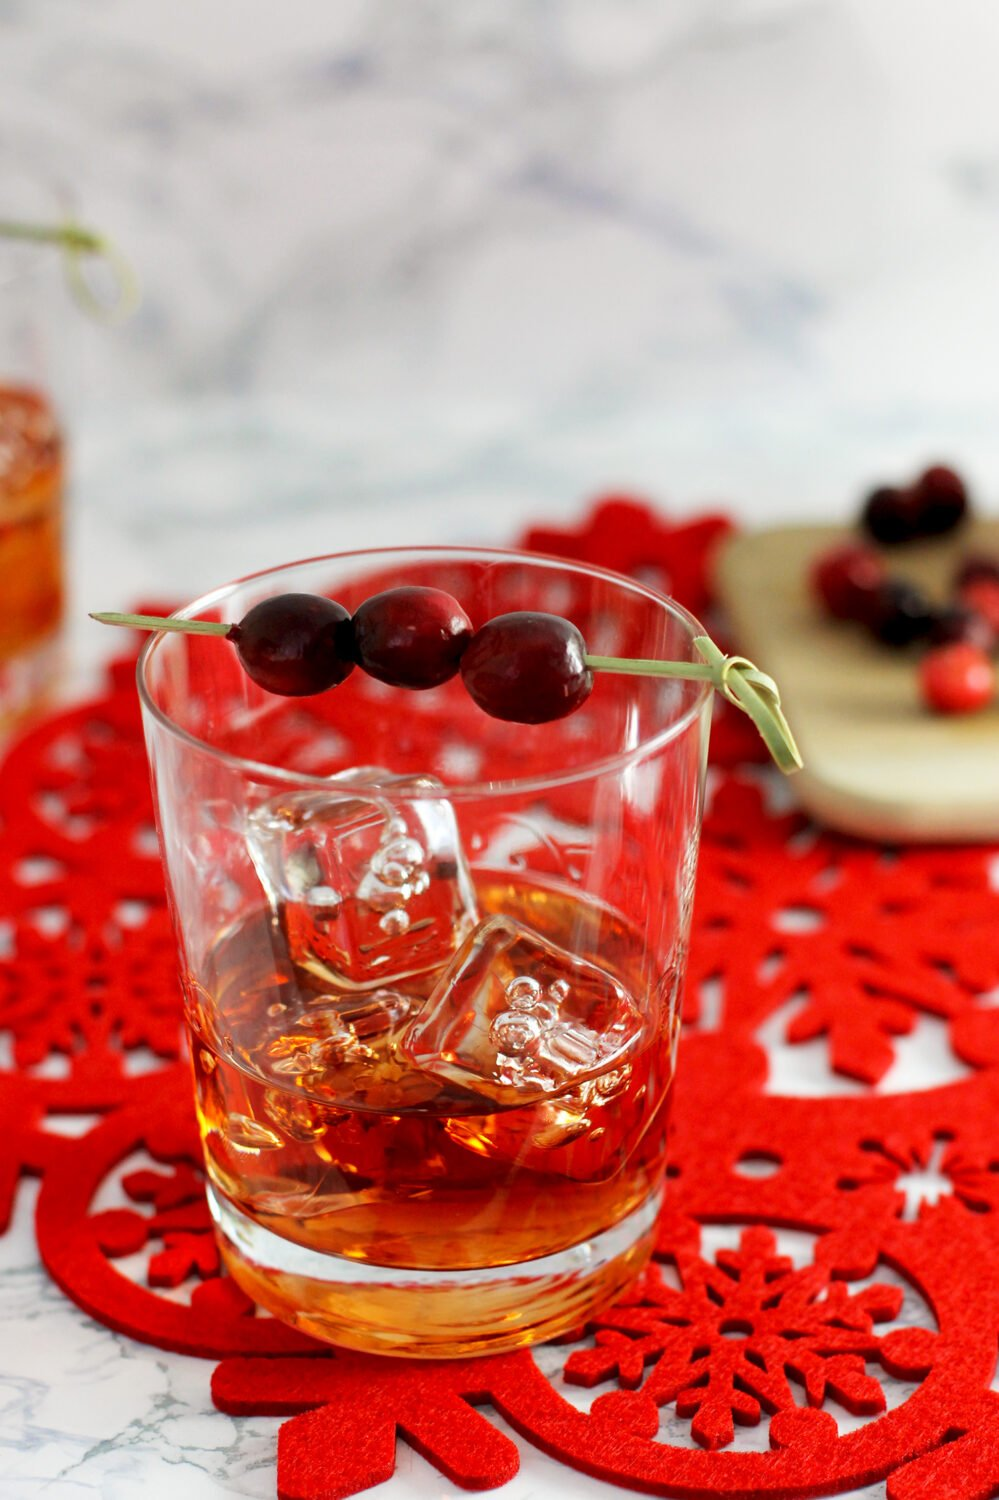 Looking for a classic cocktail recipe that's perfect for the holidays? Try this cranberry apple old fashioned recipe!